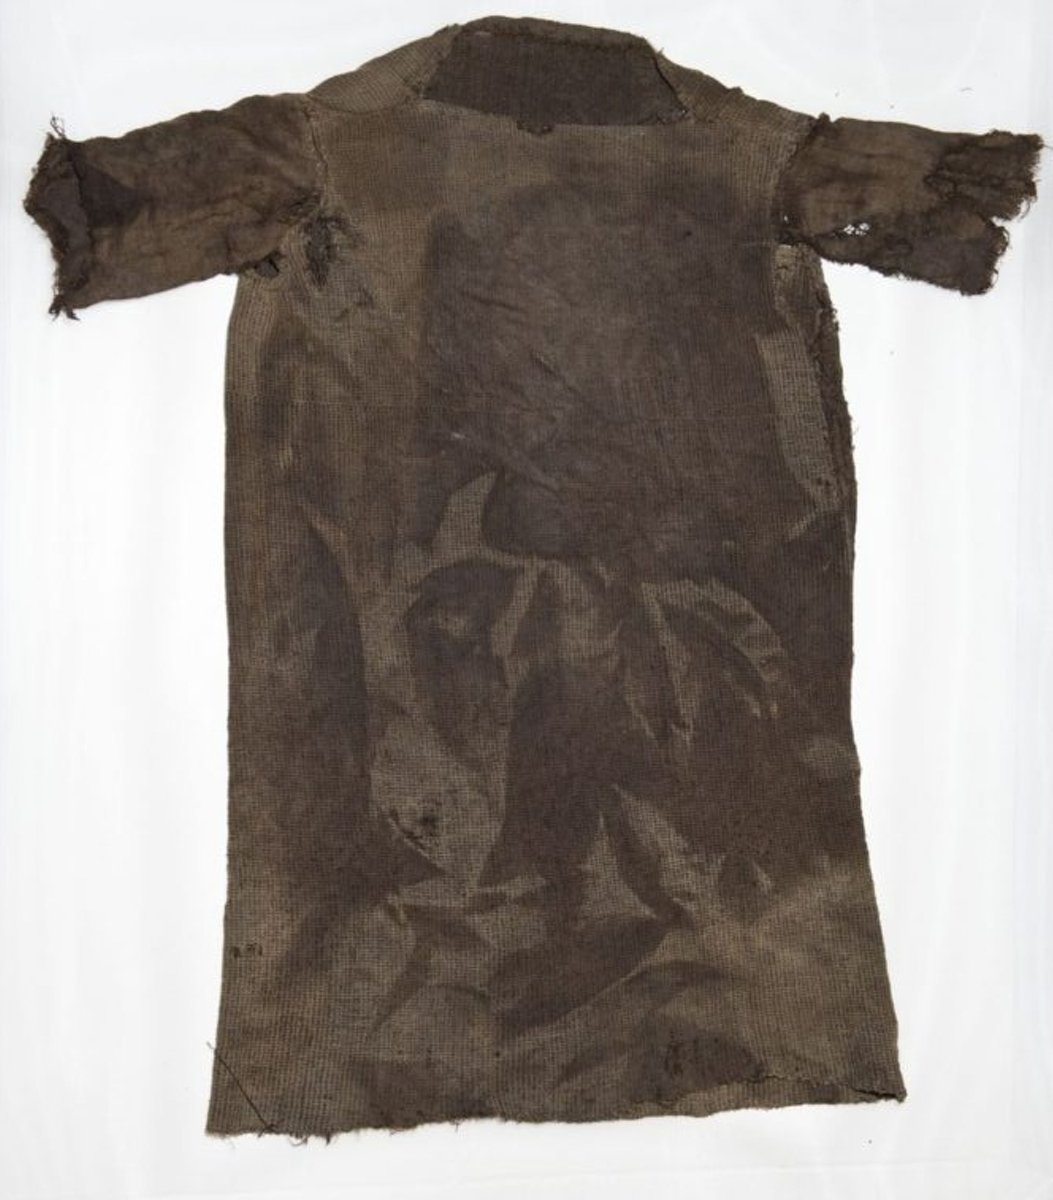 Tunic-after-conservation-1024x682